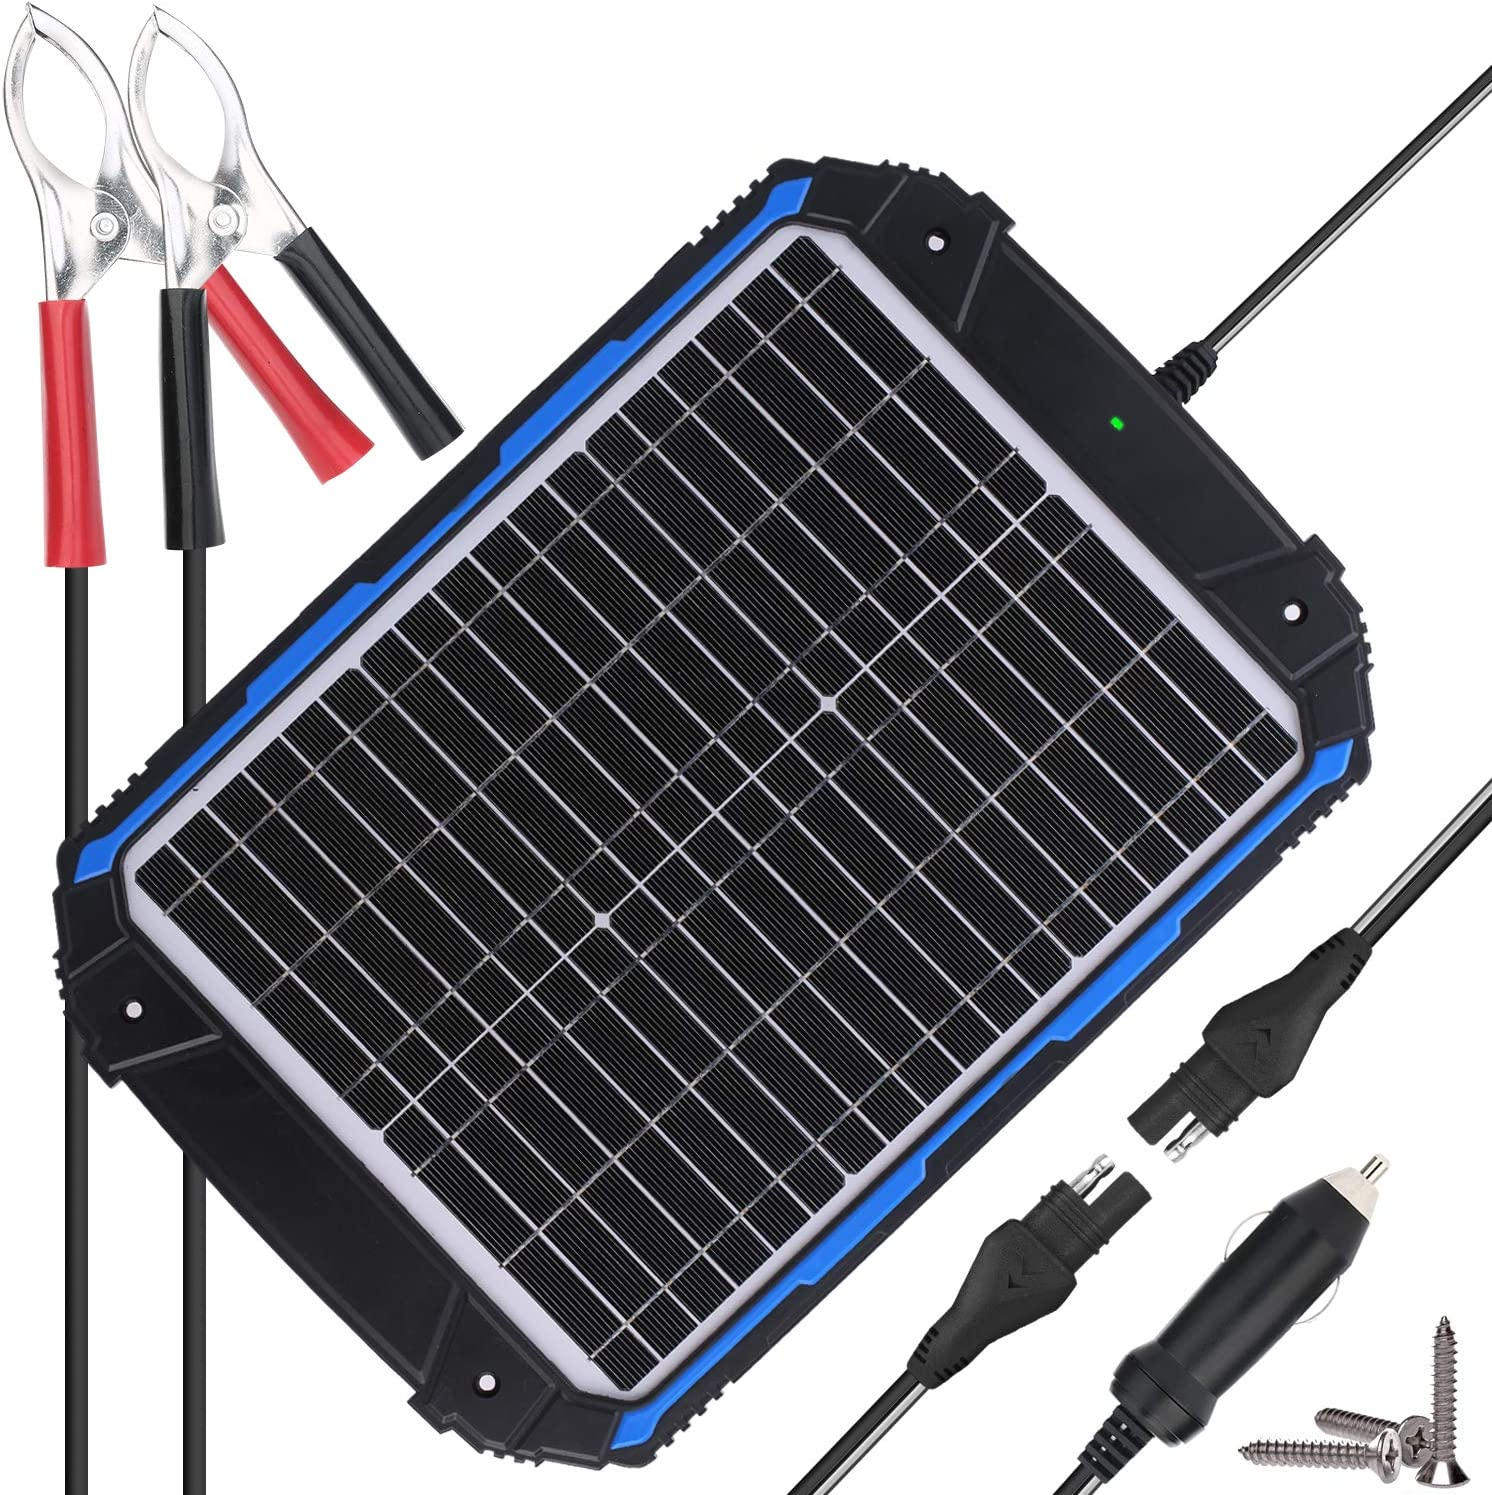 SUNER POWER Waterproof 12V Solar Battery Charger & Maintainer Pro Built in Intelligent MPPT Charge Controller 20W Solar Panel Trickle Charging Kit